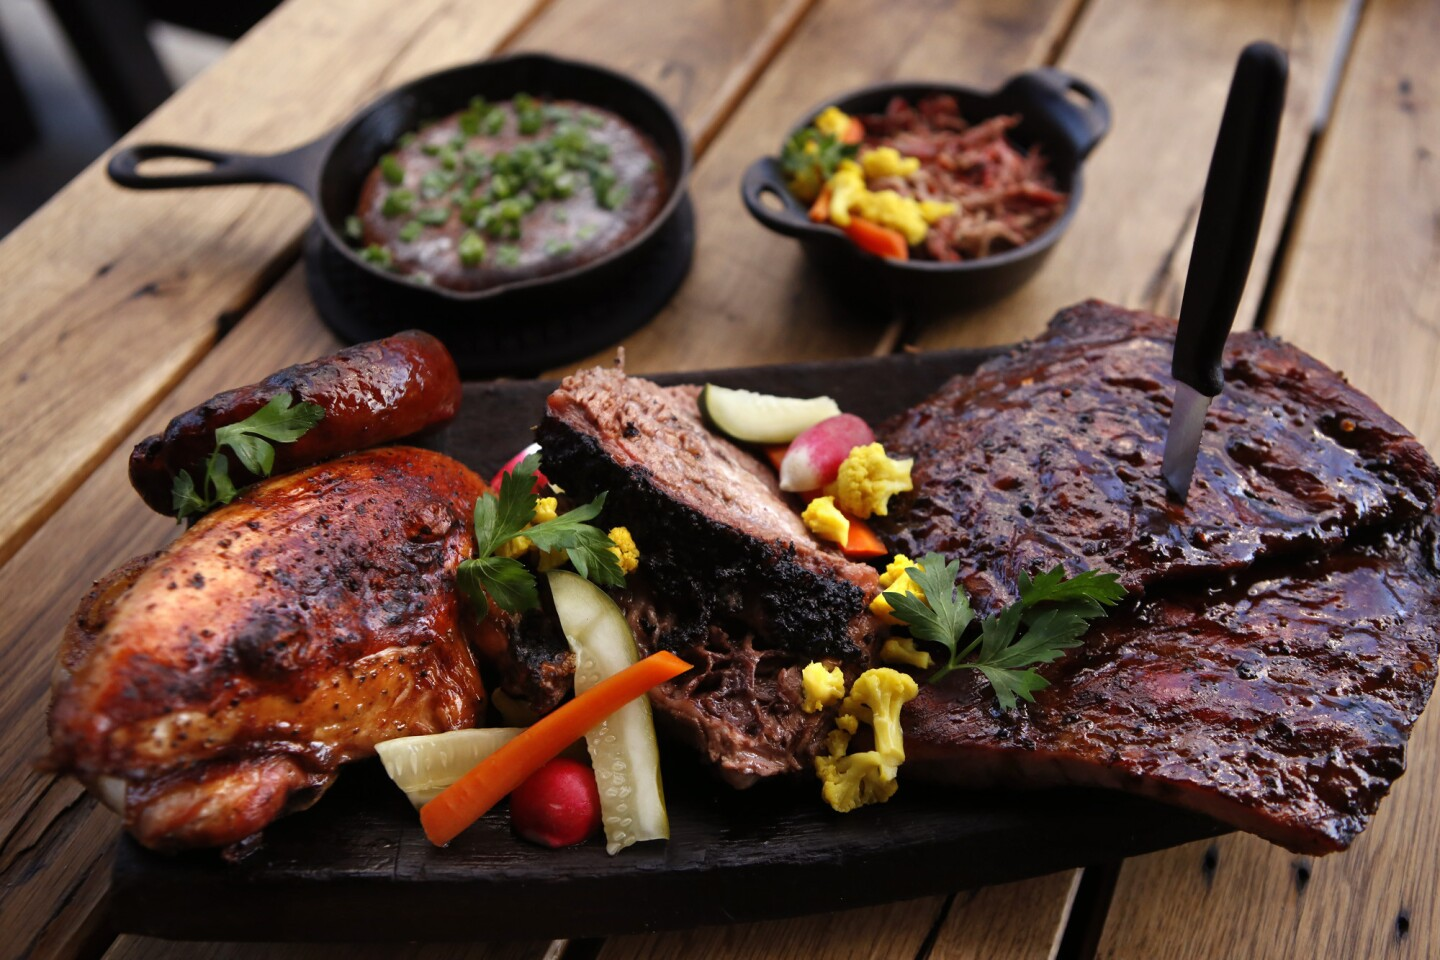 Round out a combo platter of smoked meats with hoe cake, a buttery corn bread dish, and a side of pulled pork at Barrel & Ashes. Jonathan Gold's 101